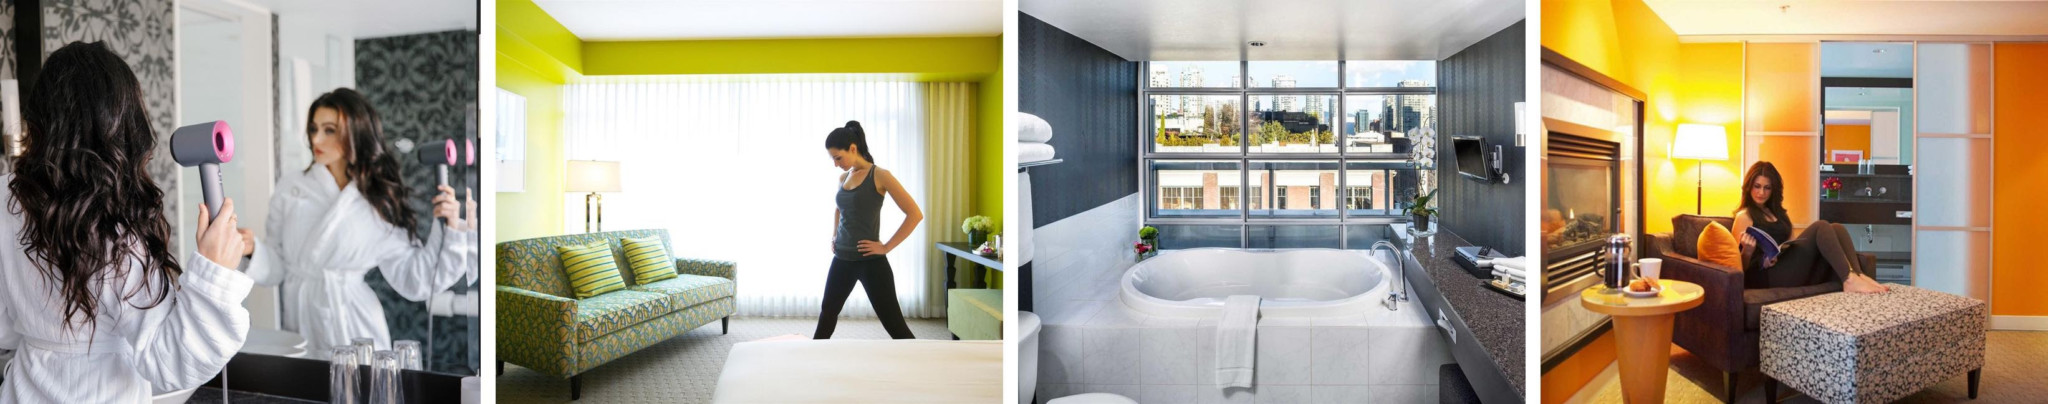 OPUS Hotel brings wellness to guests with new self-care menu